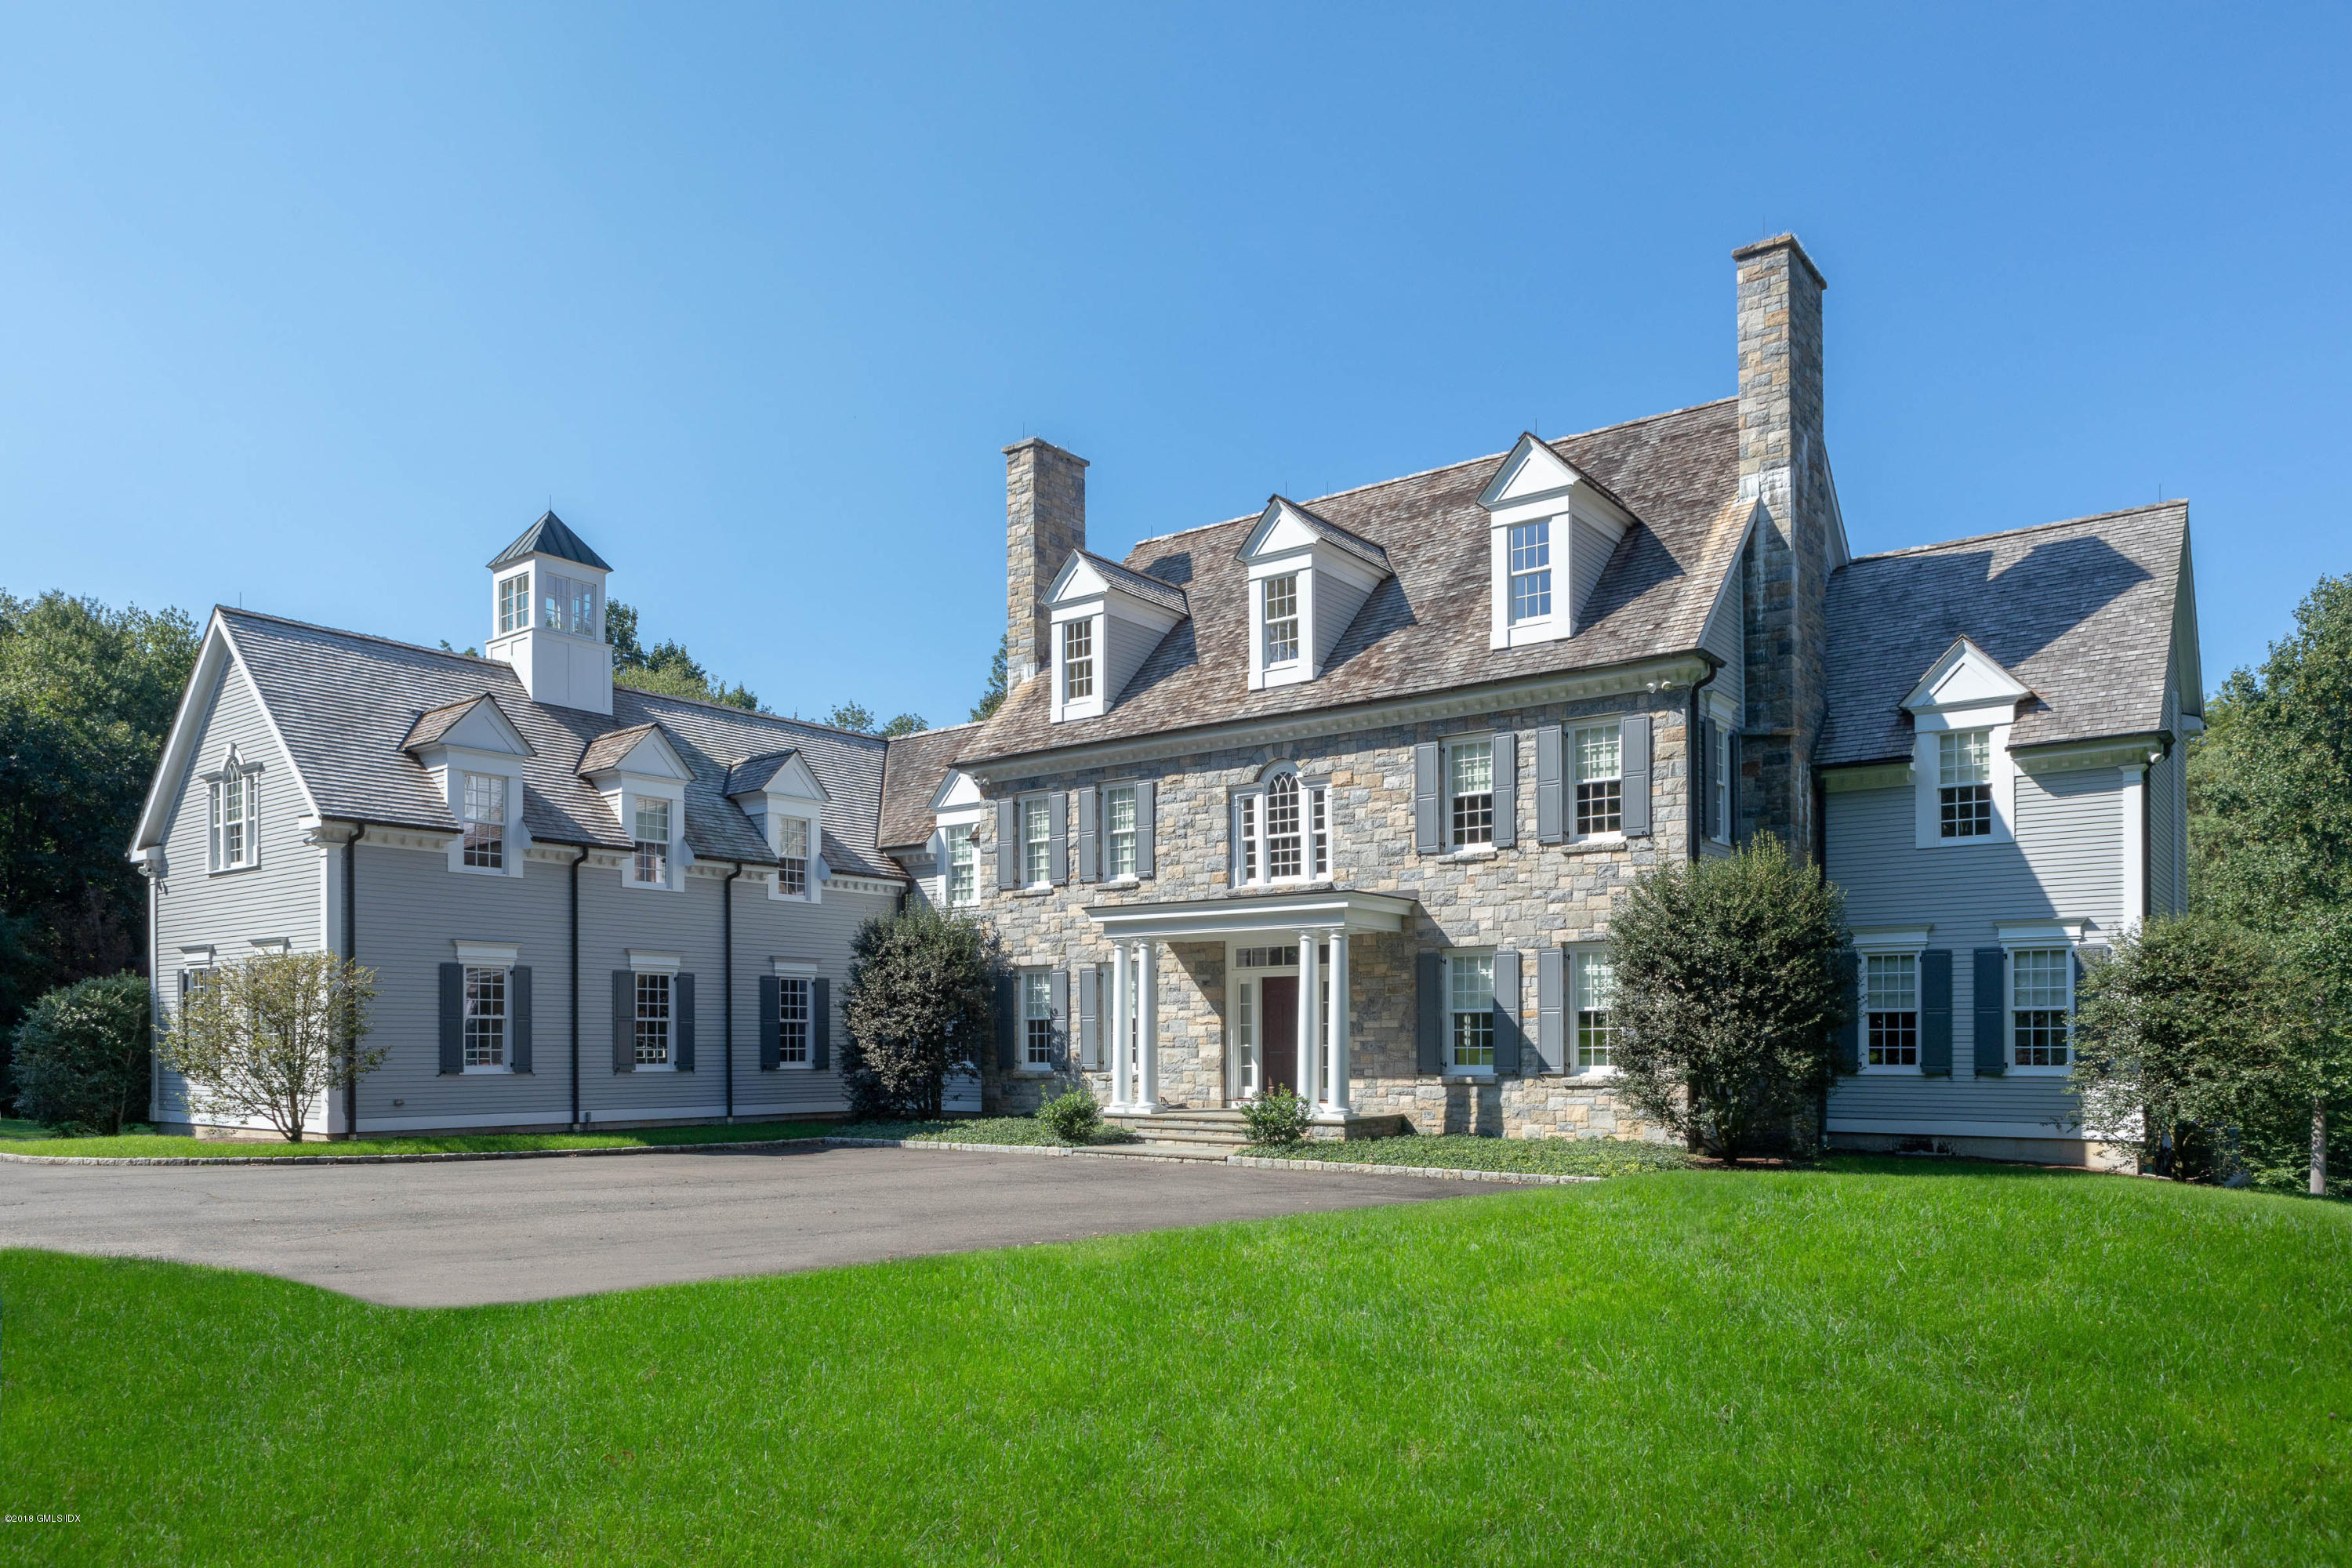 70 Old Mill Road,Greenwich,Connecticut 06831,6 Bedrooms Bedrooms,8 BathroomsBathrooms,Single family,Old Mill,102957